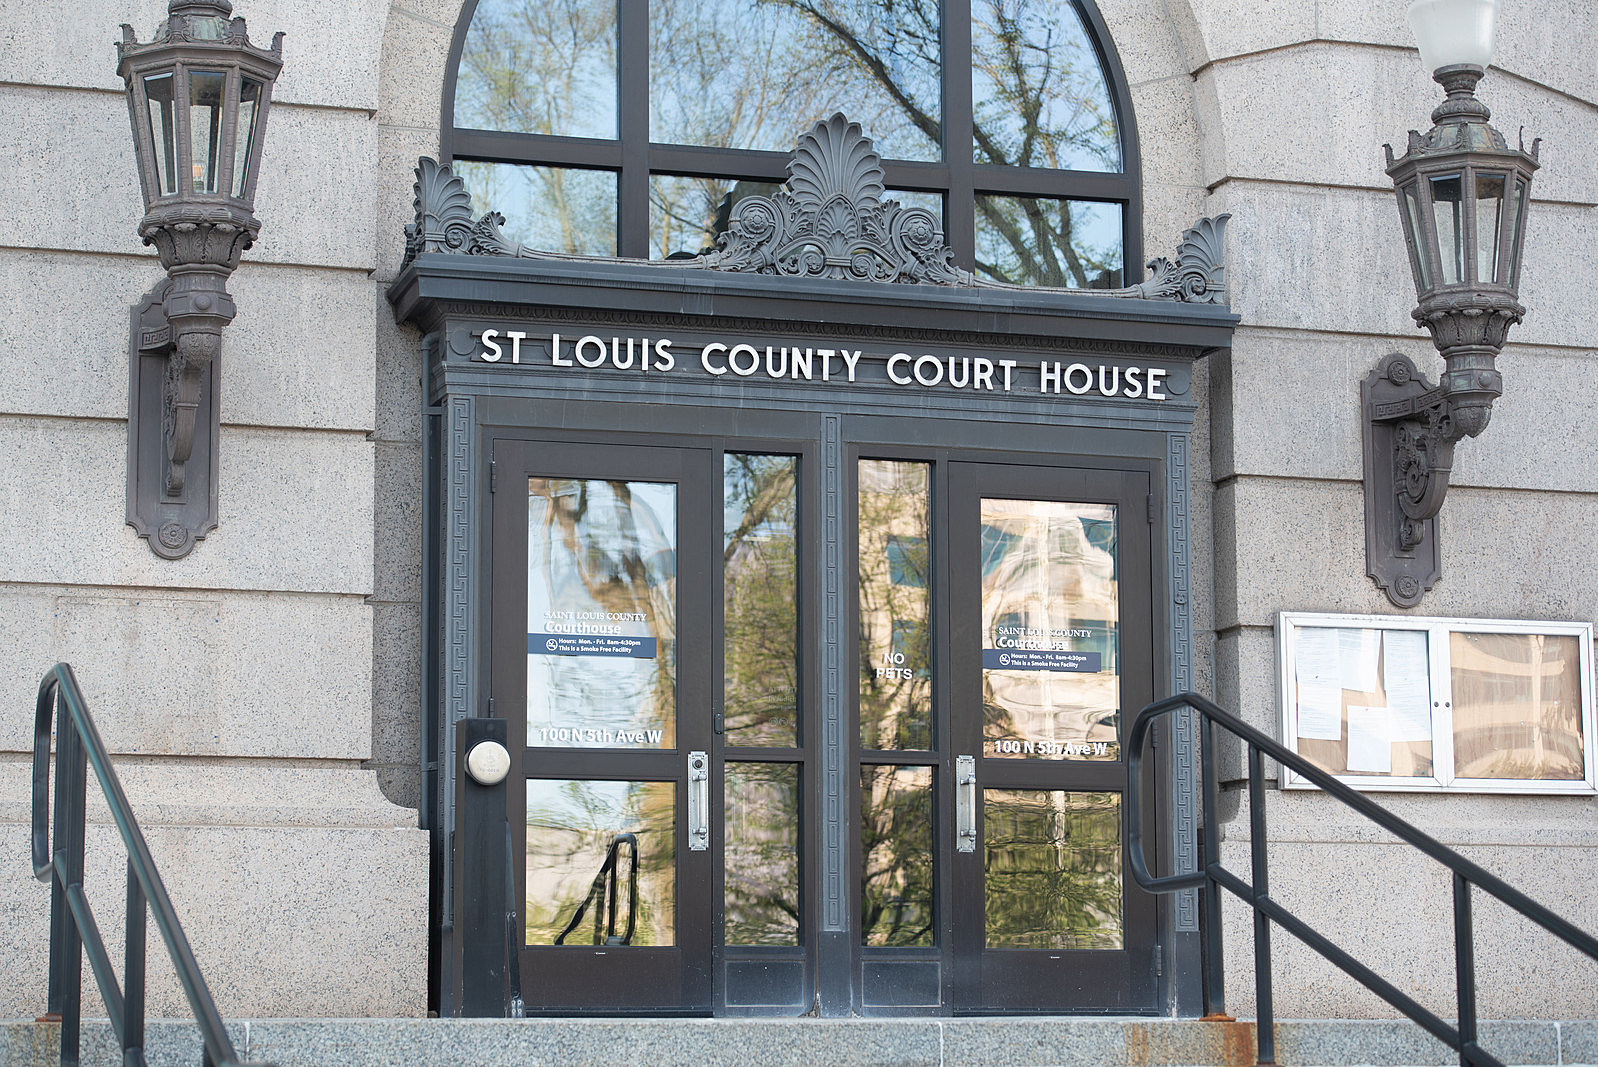 St. Louis Cty To Start Virtual Board Meetings On April 14 For St. Louis County Court Mn Schedule